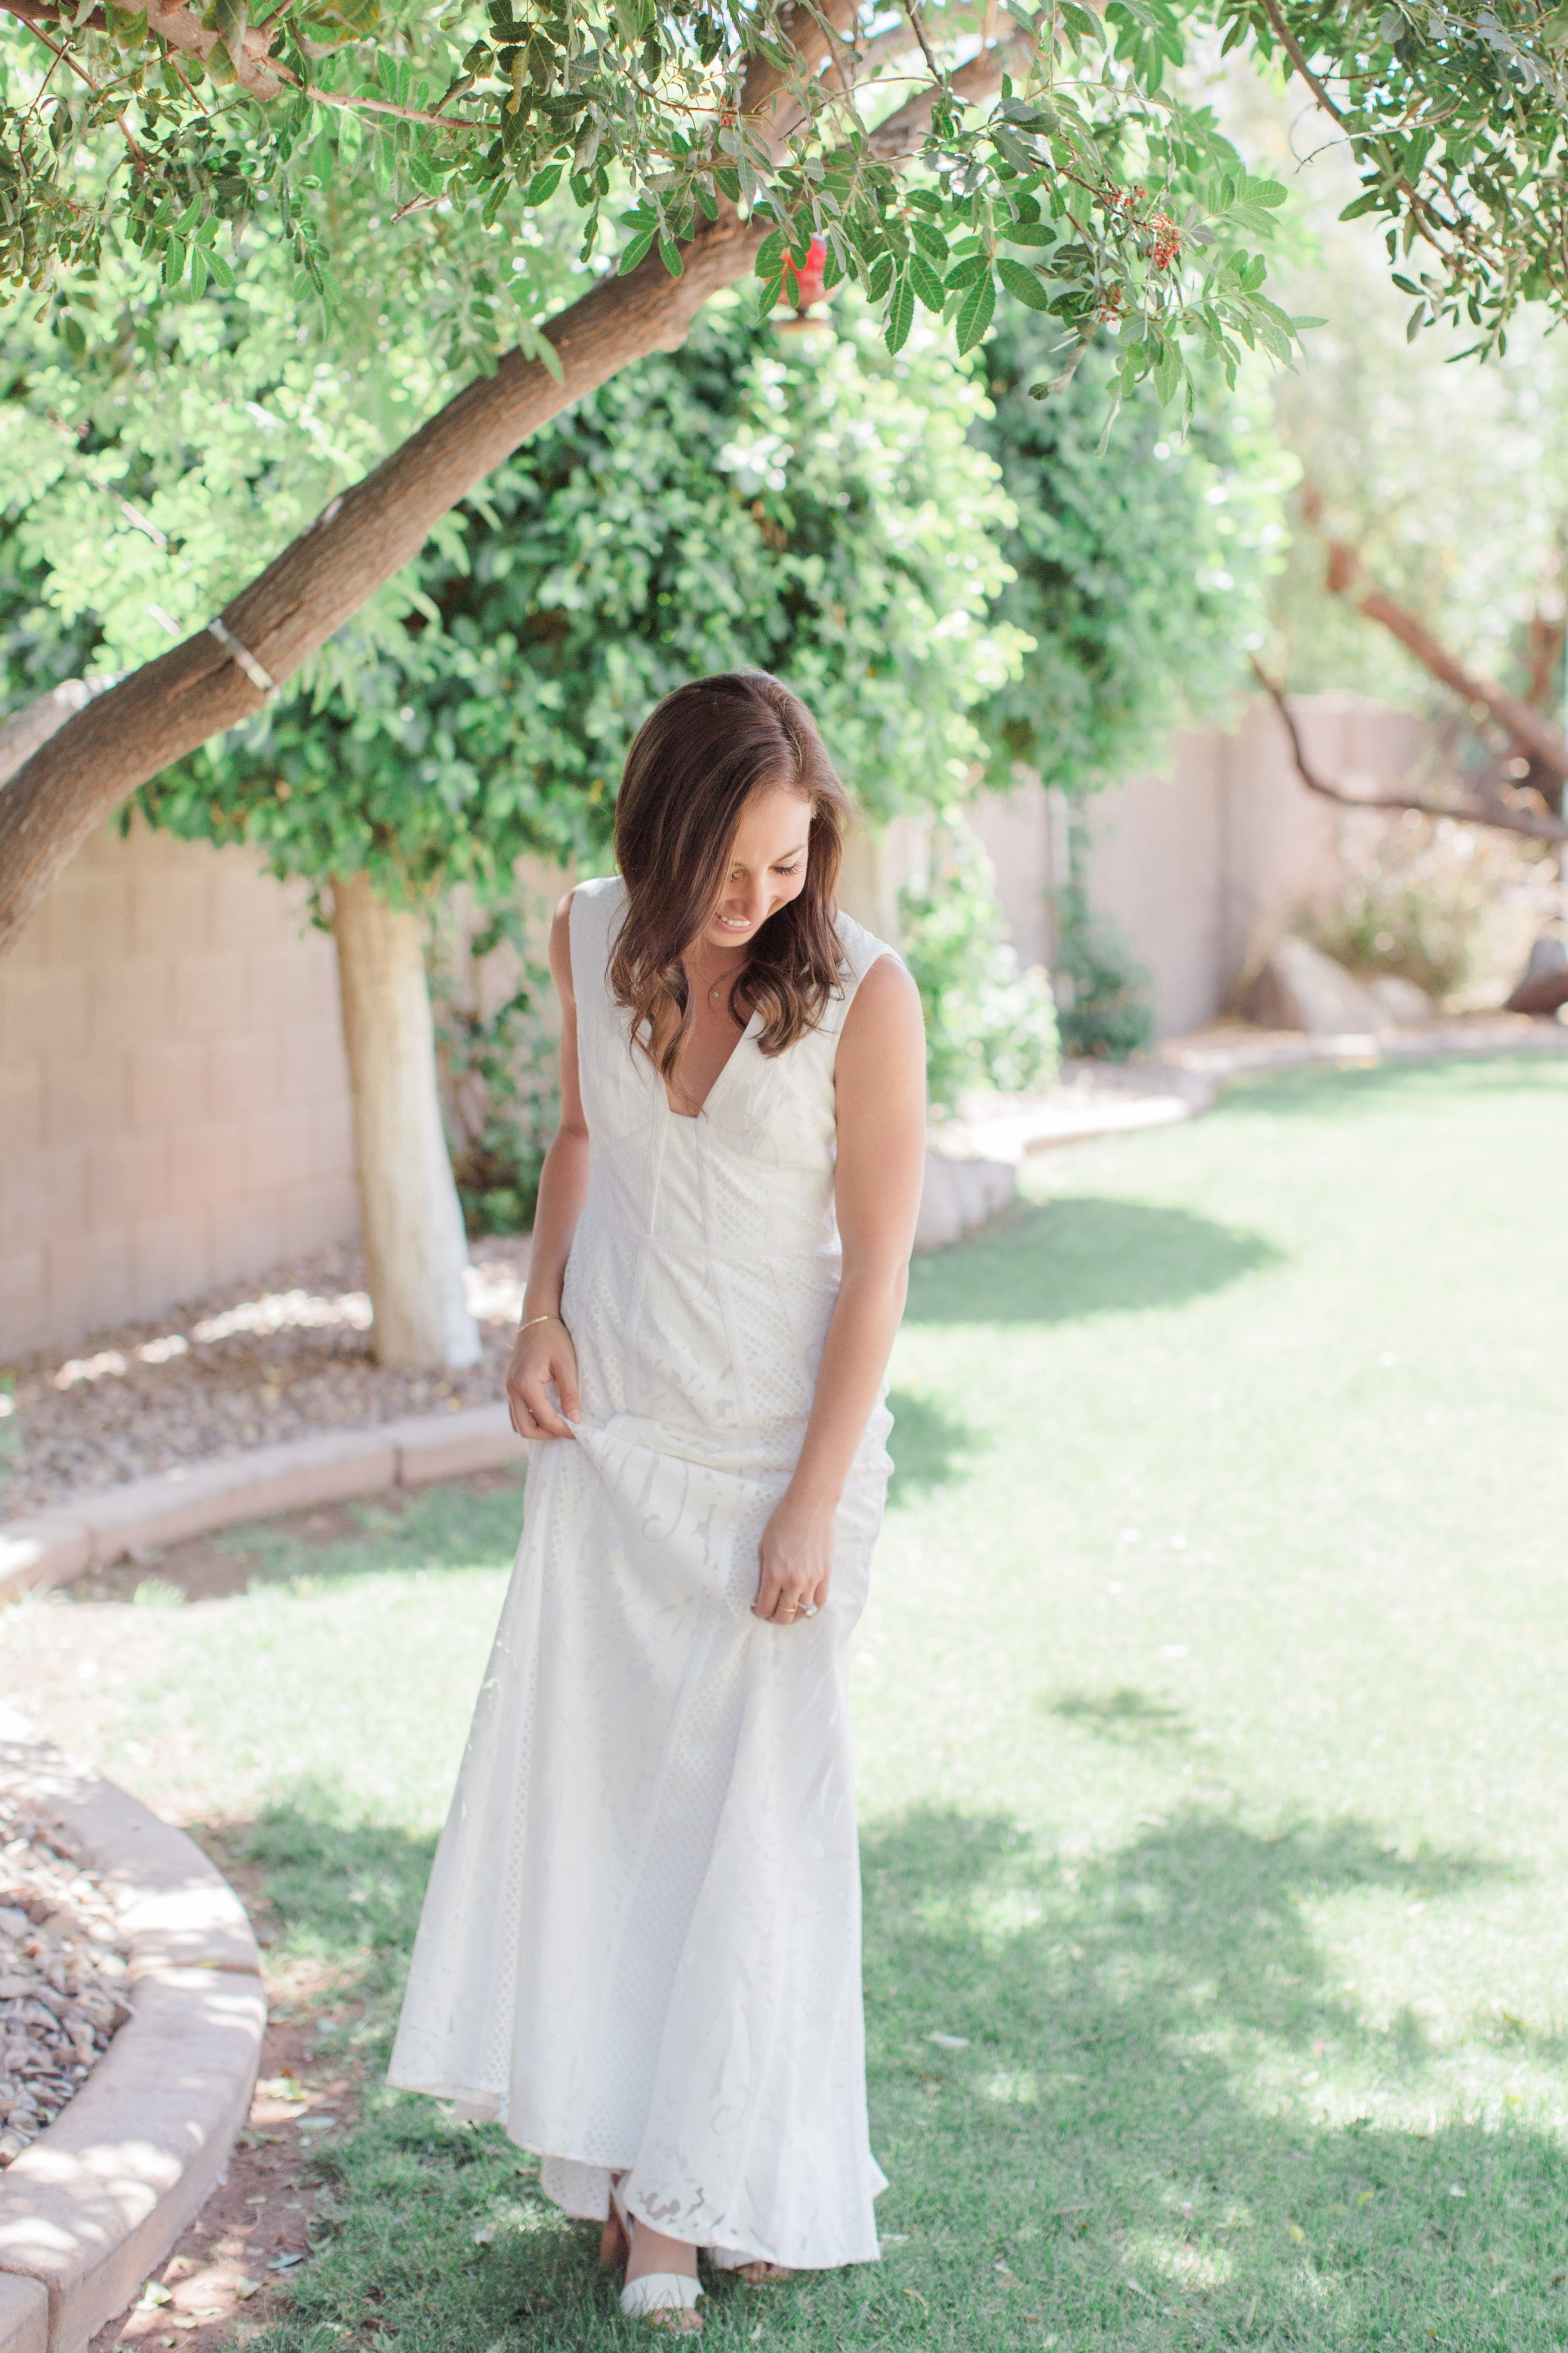 View More: http://elysehall.pass.us/bronskasmpprojects